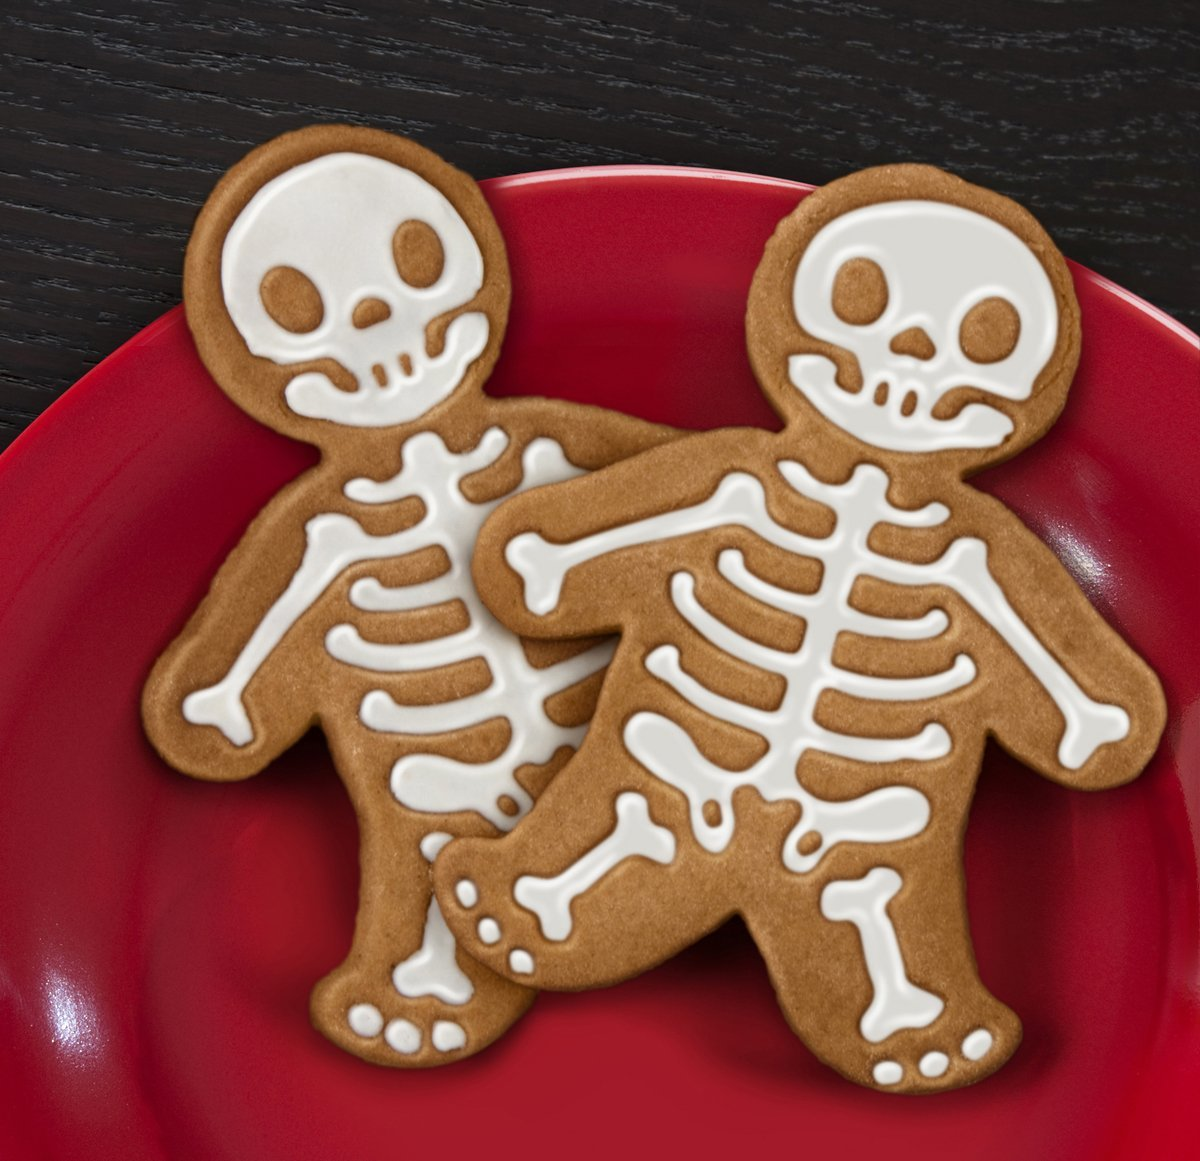 delightfully scary halloween cookie cutters - Halloween Gingerbread Cookies